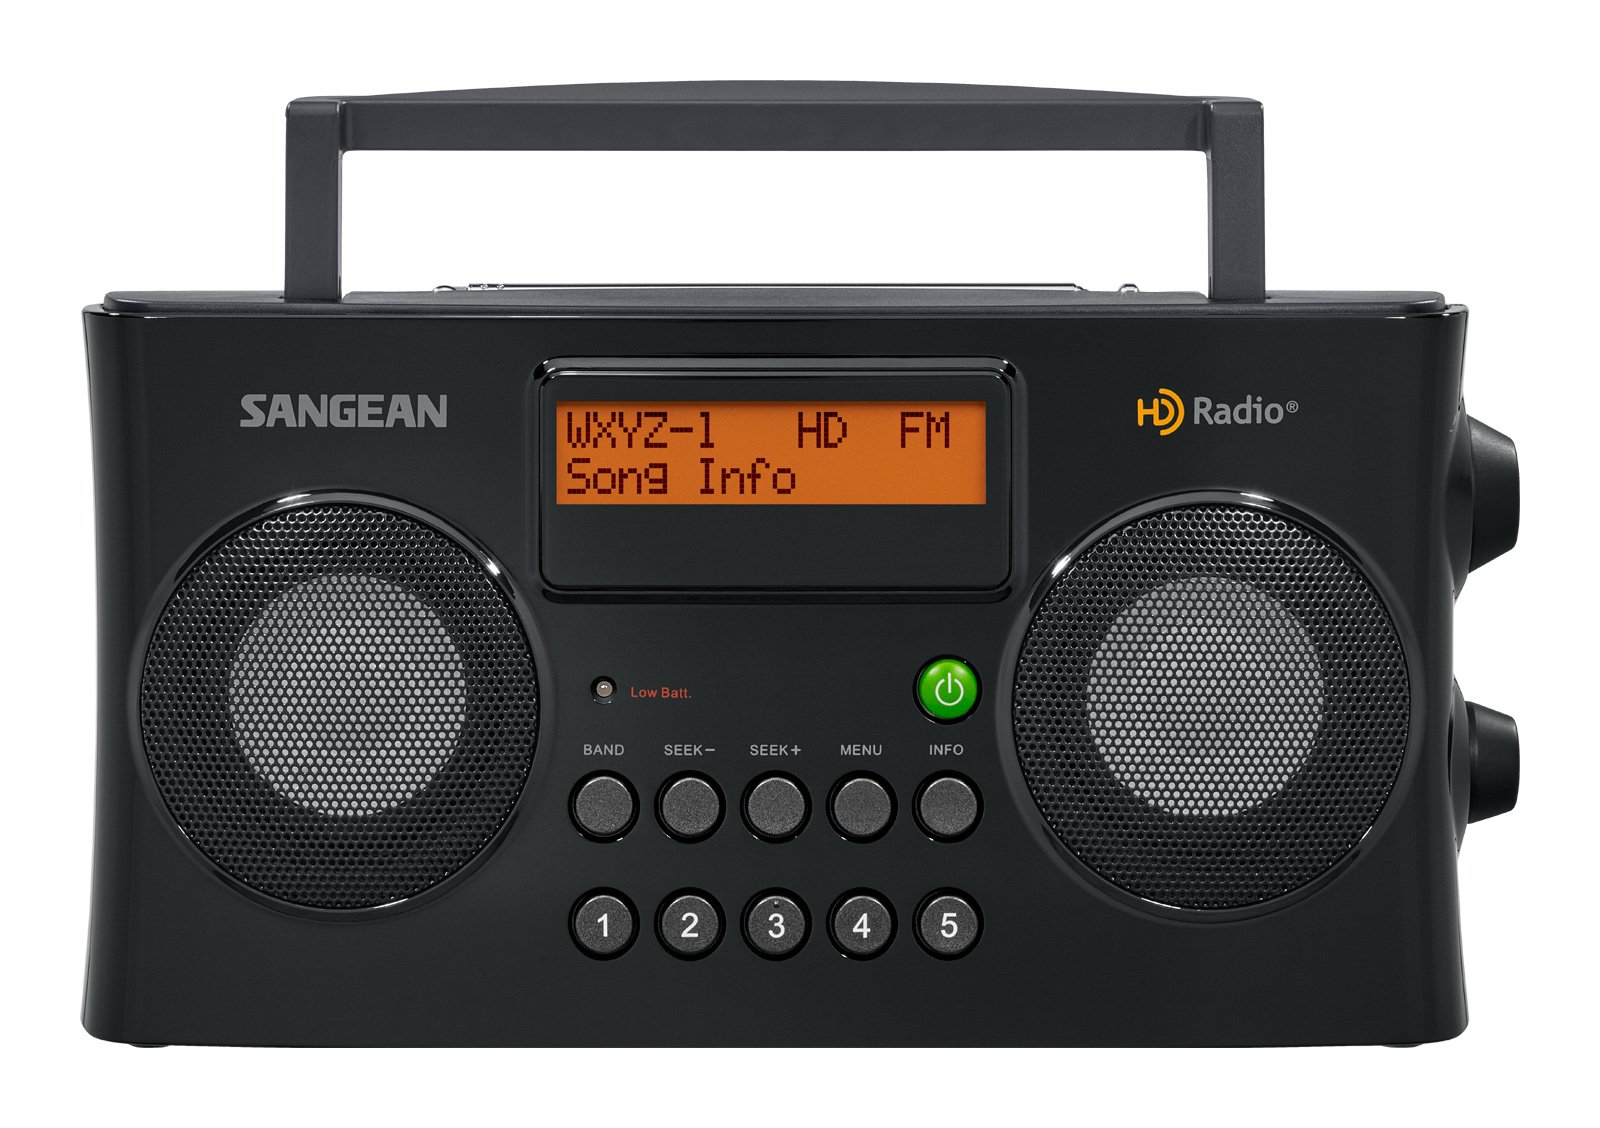 Sangean All in One Portable HD AM/FM Dual Alarm Clock Radio with Large Easy to Read Backlit LCD Display by Sangean